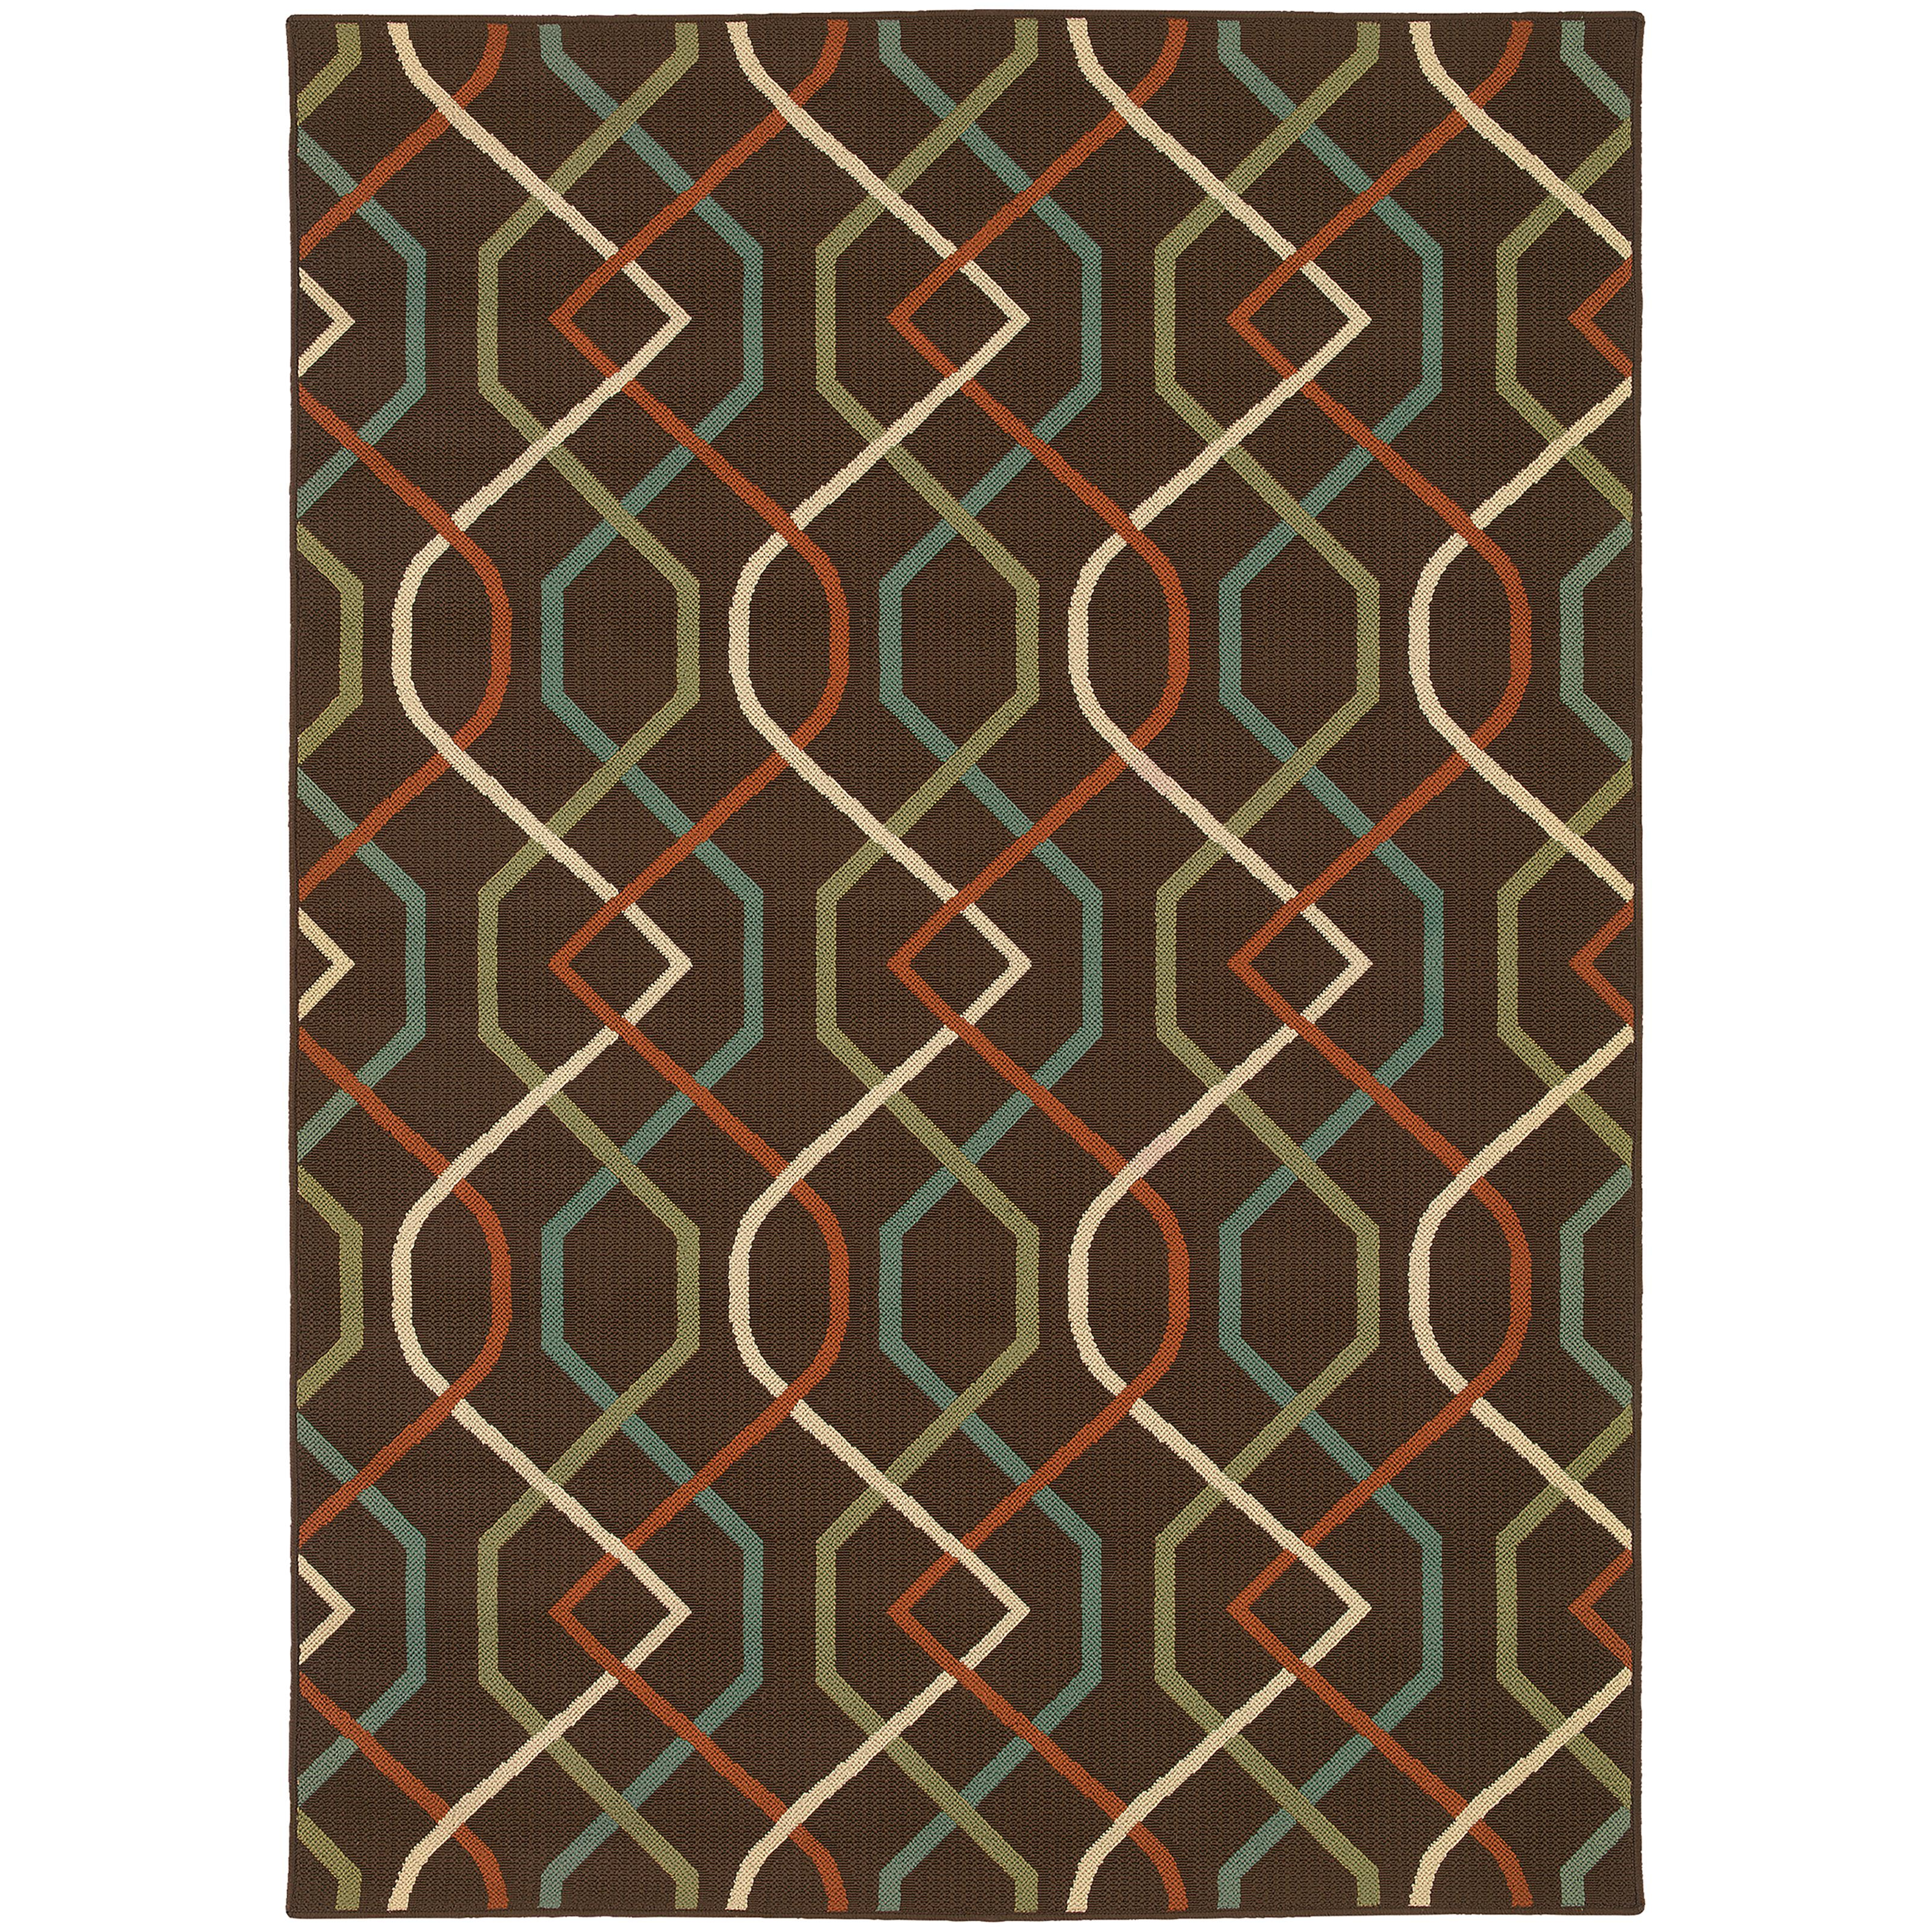 "Montego 3' 7"" X  5' 6"" Rug by Oriental Weavers at Godby Home Furnishings"